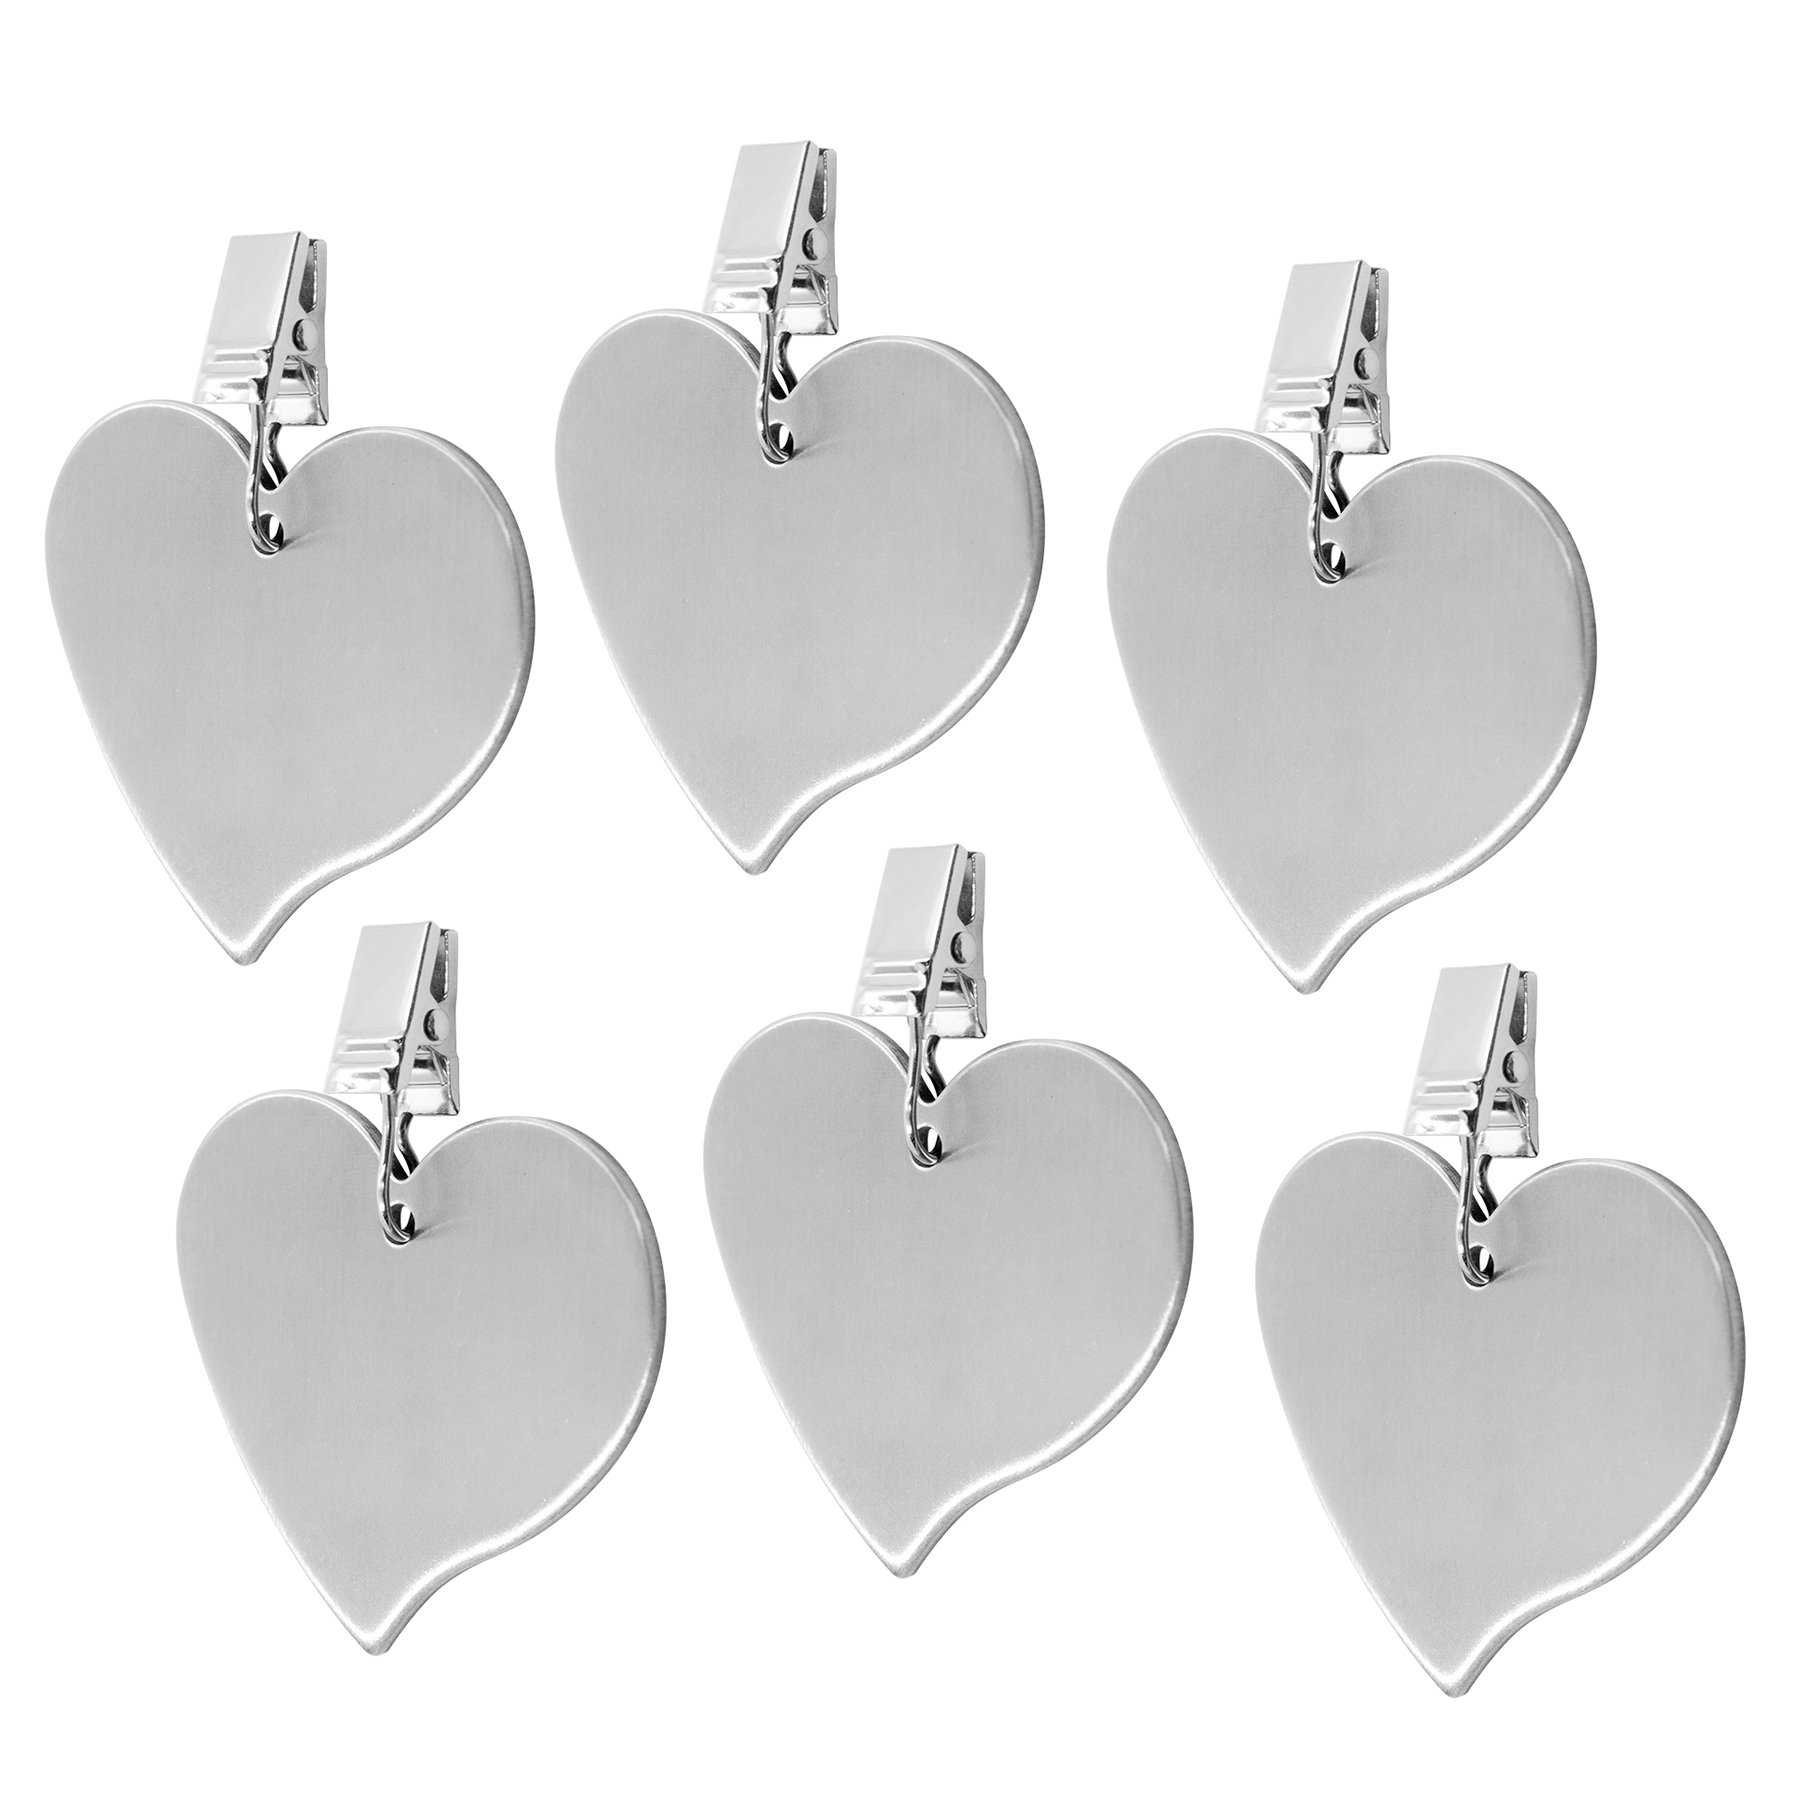 TEKEFT Set of 6 Stainless Steel Heart Shaped Table Cover Tablecloth Weights (6)